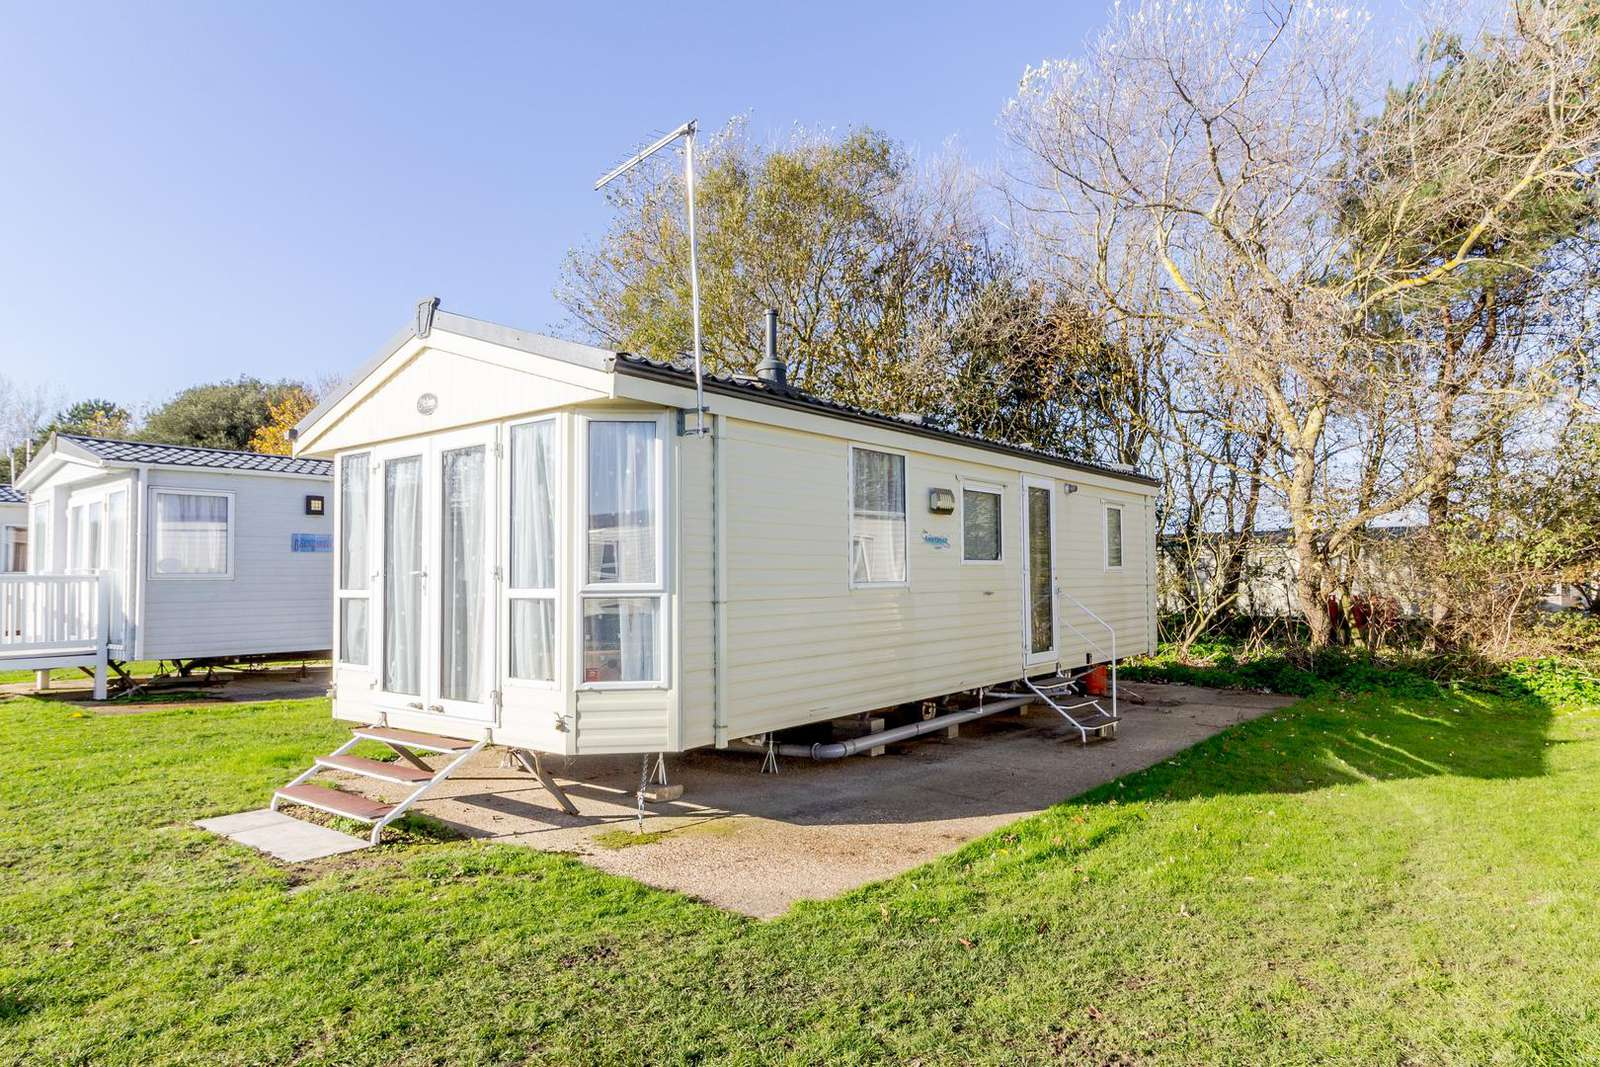 20329BS – Broadland, 2 bed, 6 berth caravan with C/H & D/G. Ruby rated. - property